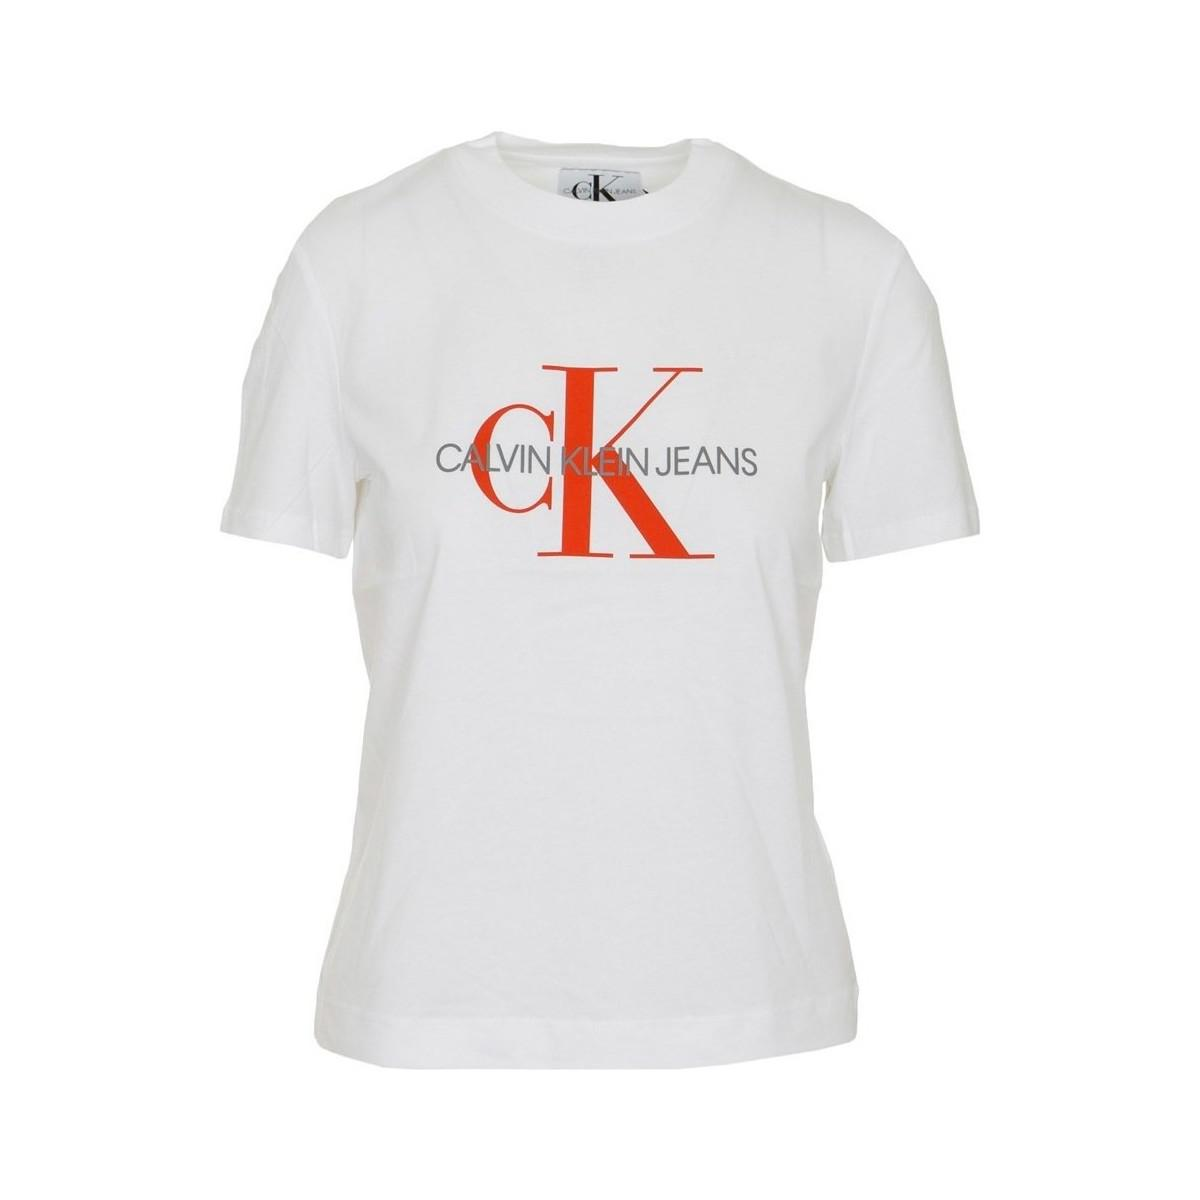 1a55efb825d Calvin Klein. White Satin Monogram Relax Fit Women s T Shirt In Multicolour